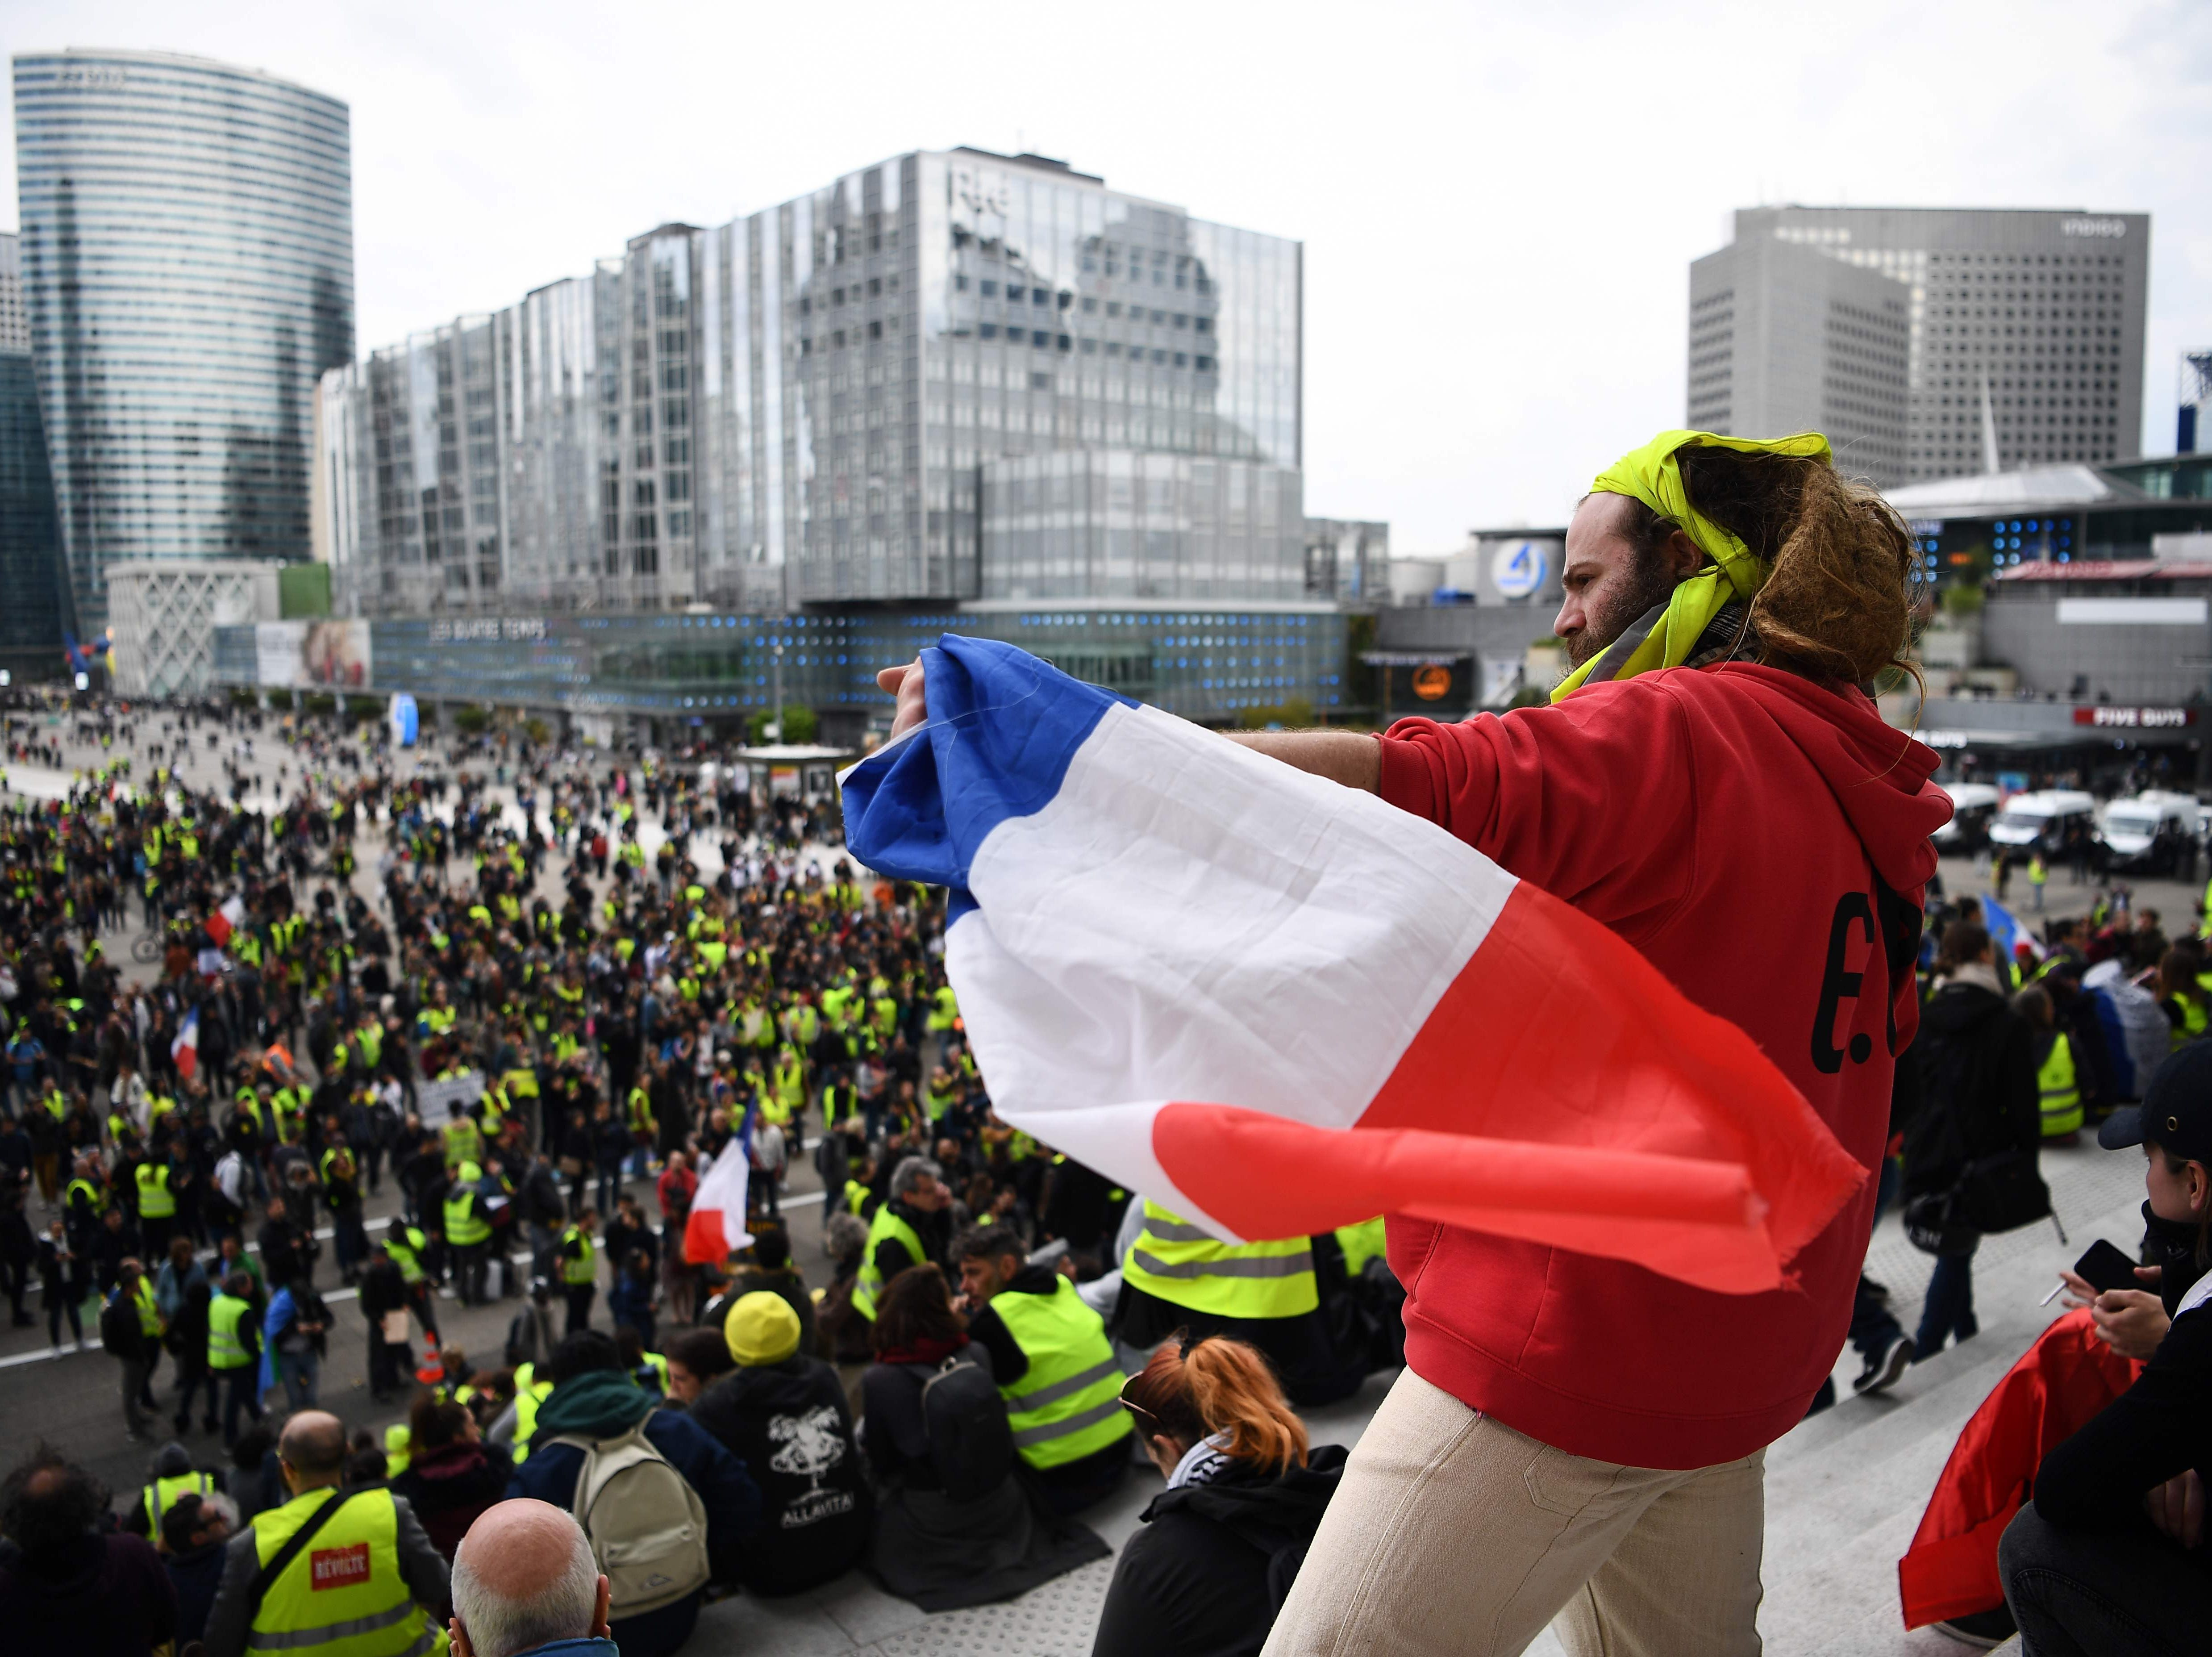 A protester holds up the French national flag as protesters gather at La Defense, west of Paris, on April 6, 2019 during a demonstration by the 'Yellow Vests' (gilets jaunes) movement on the 21st consecutive Saturday.